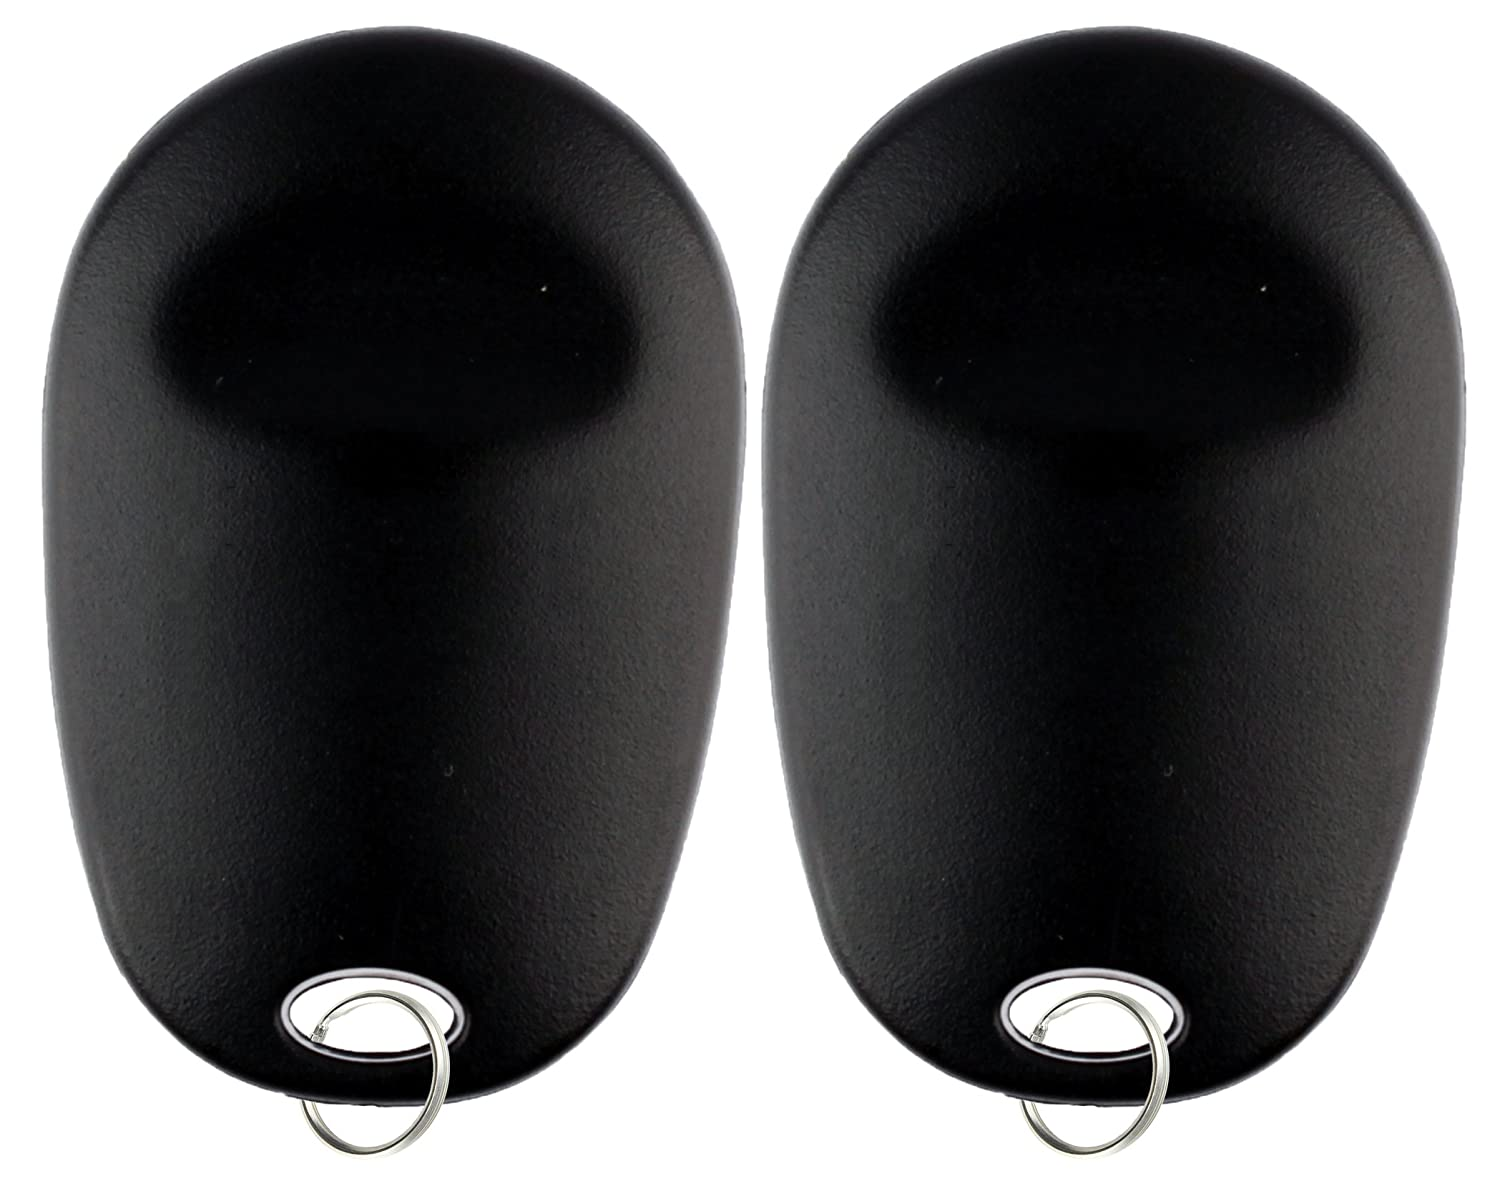 KPT3337 Pack of 2 KeylessOption Keyless Entry Remote Fob Car Key Replacement for GQ43VT20T